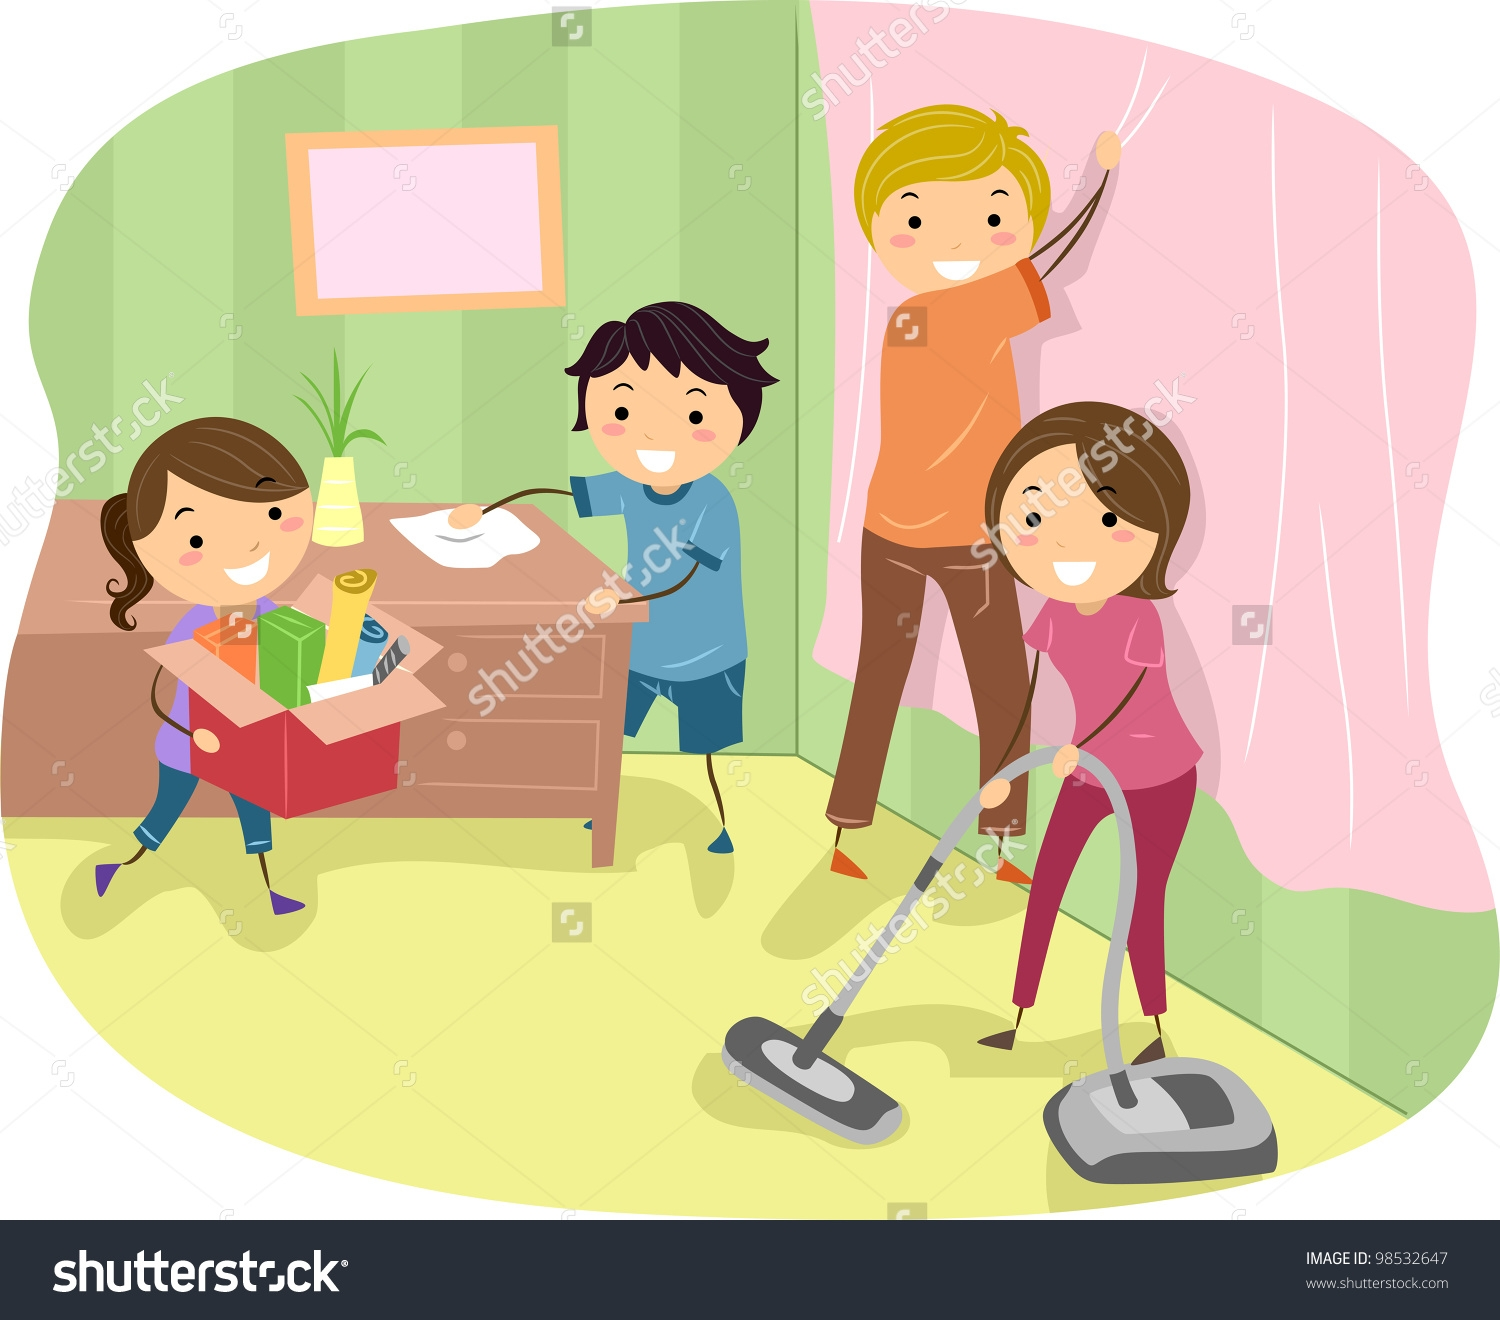 Family Doing Household Chores Together Clipart.